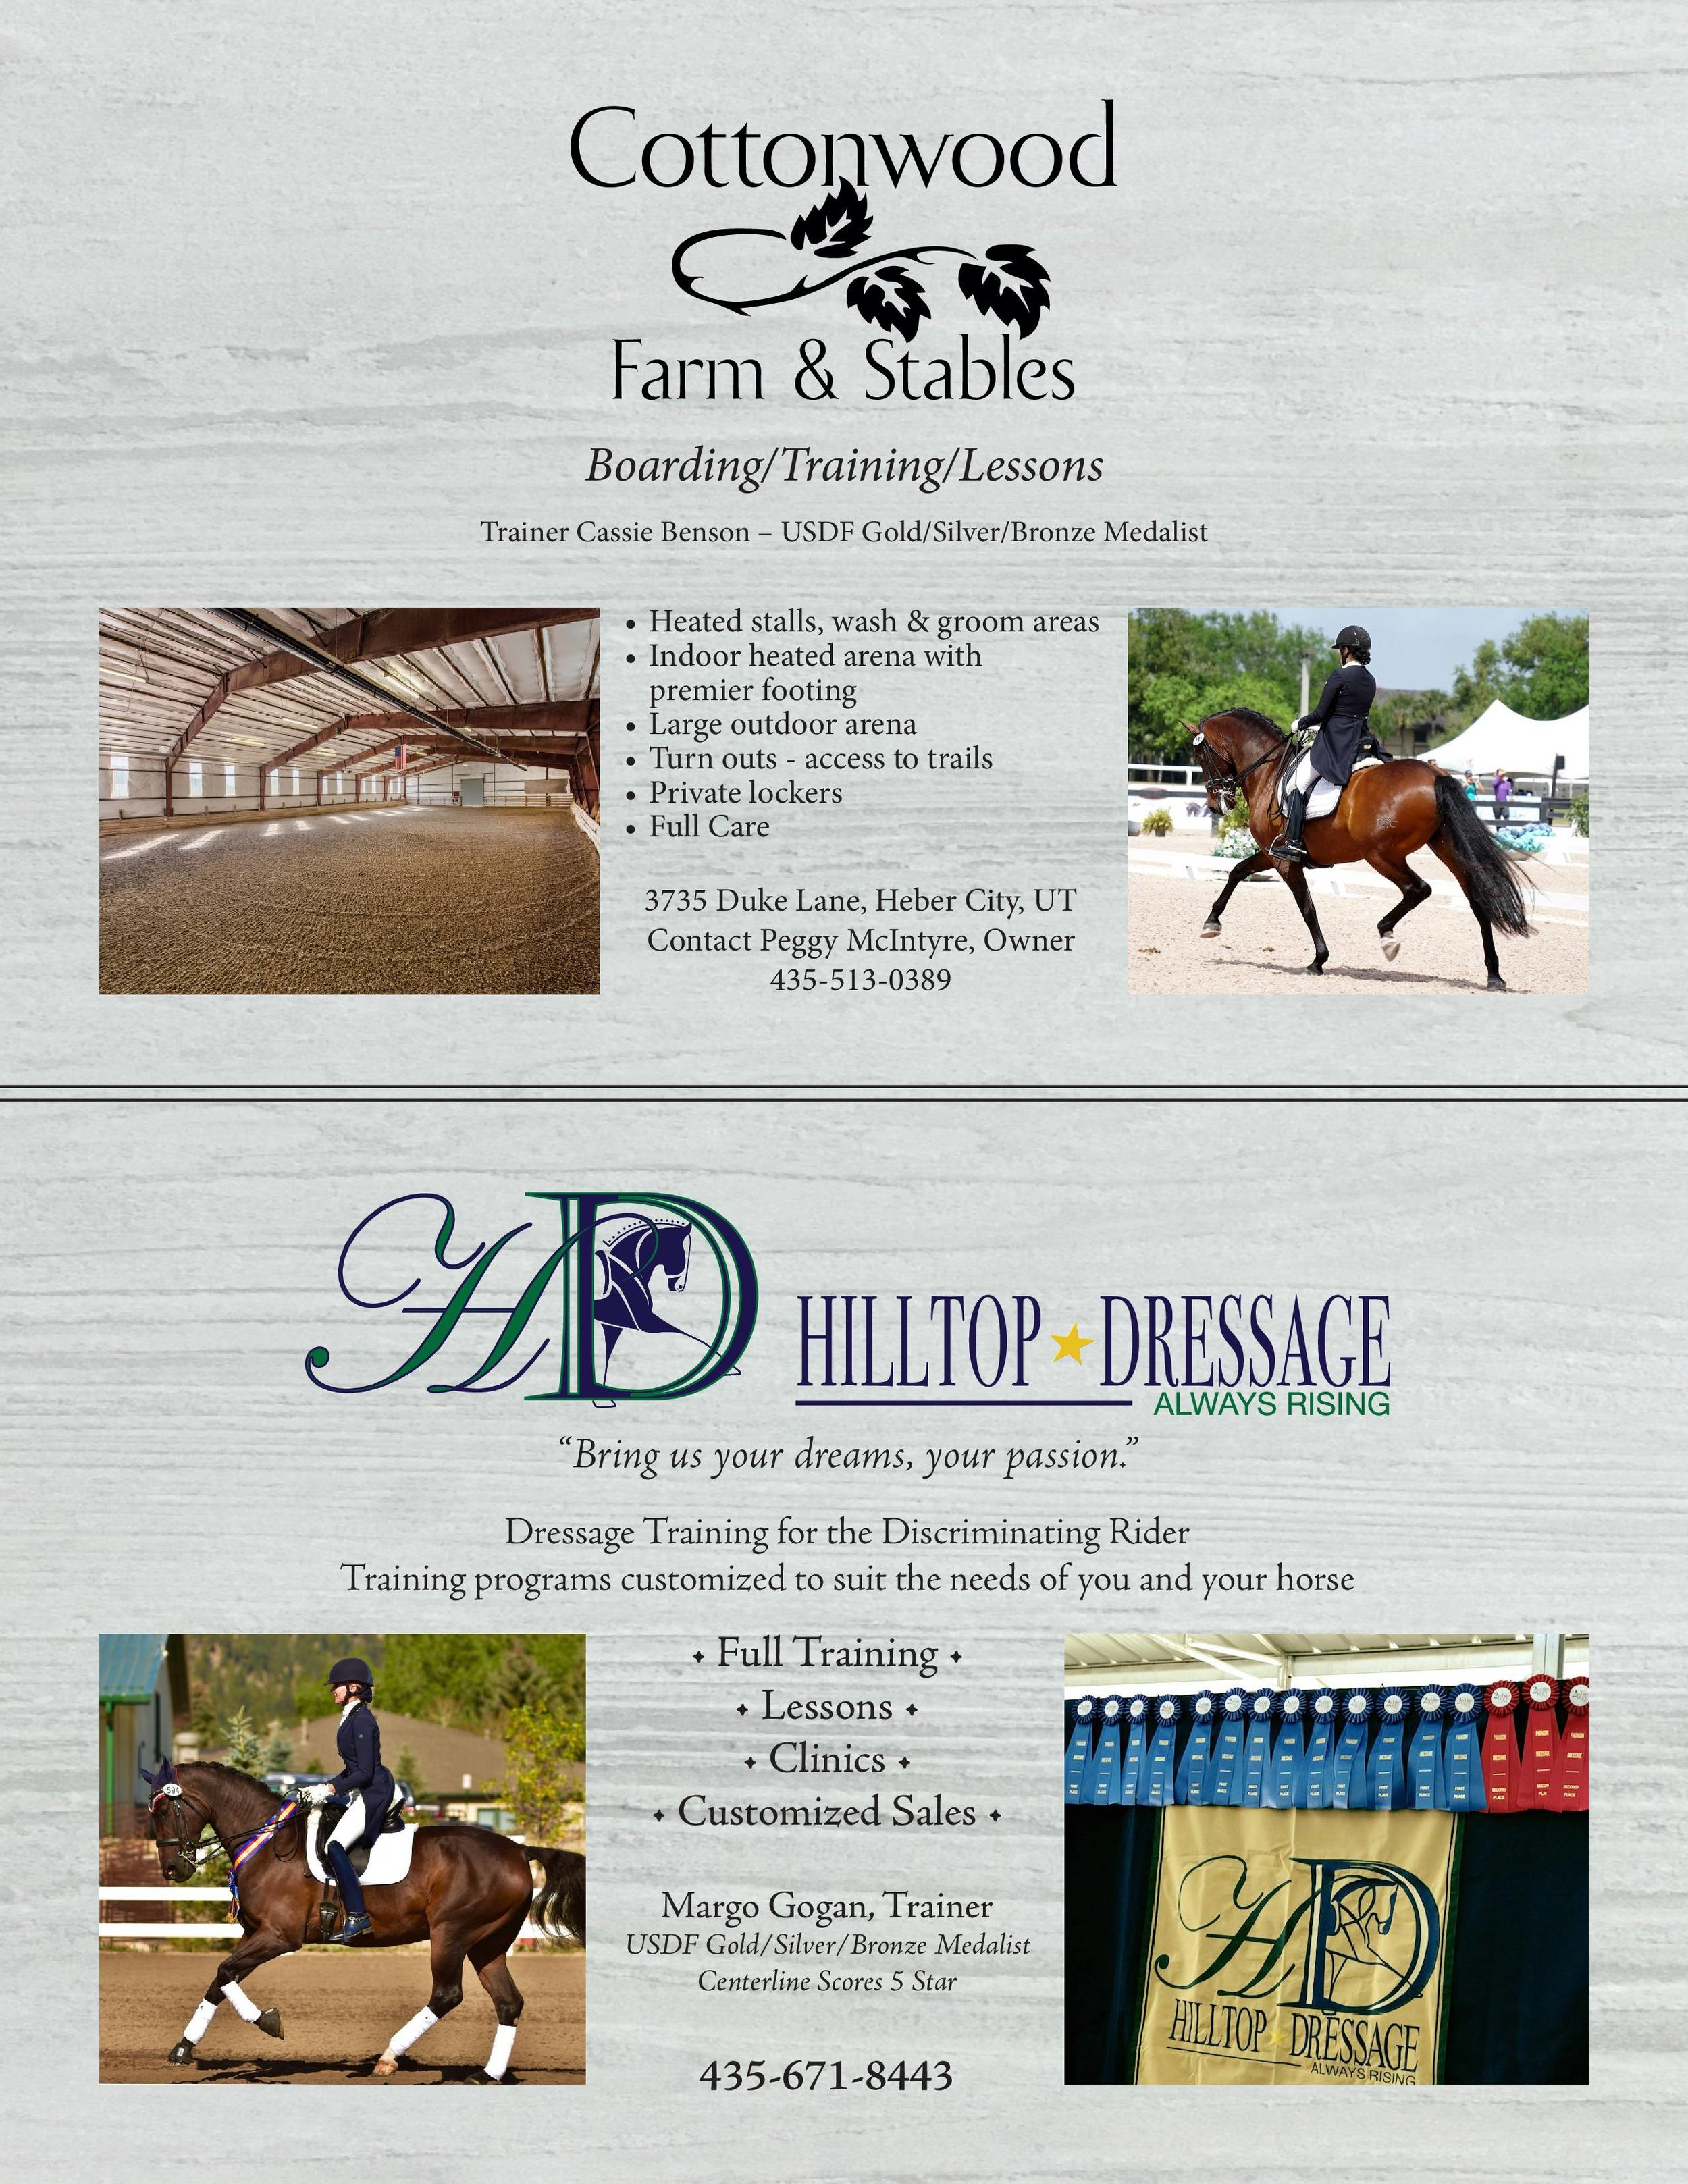 Hilltop Dressage/Cottonwood Farm & Stables